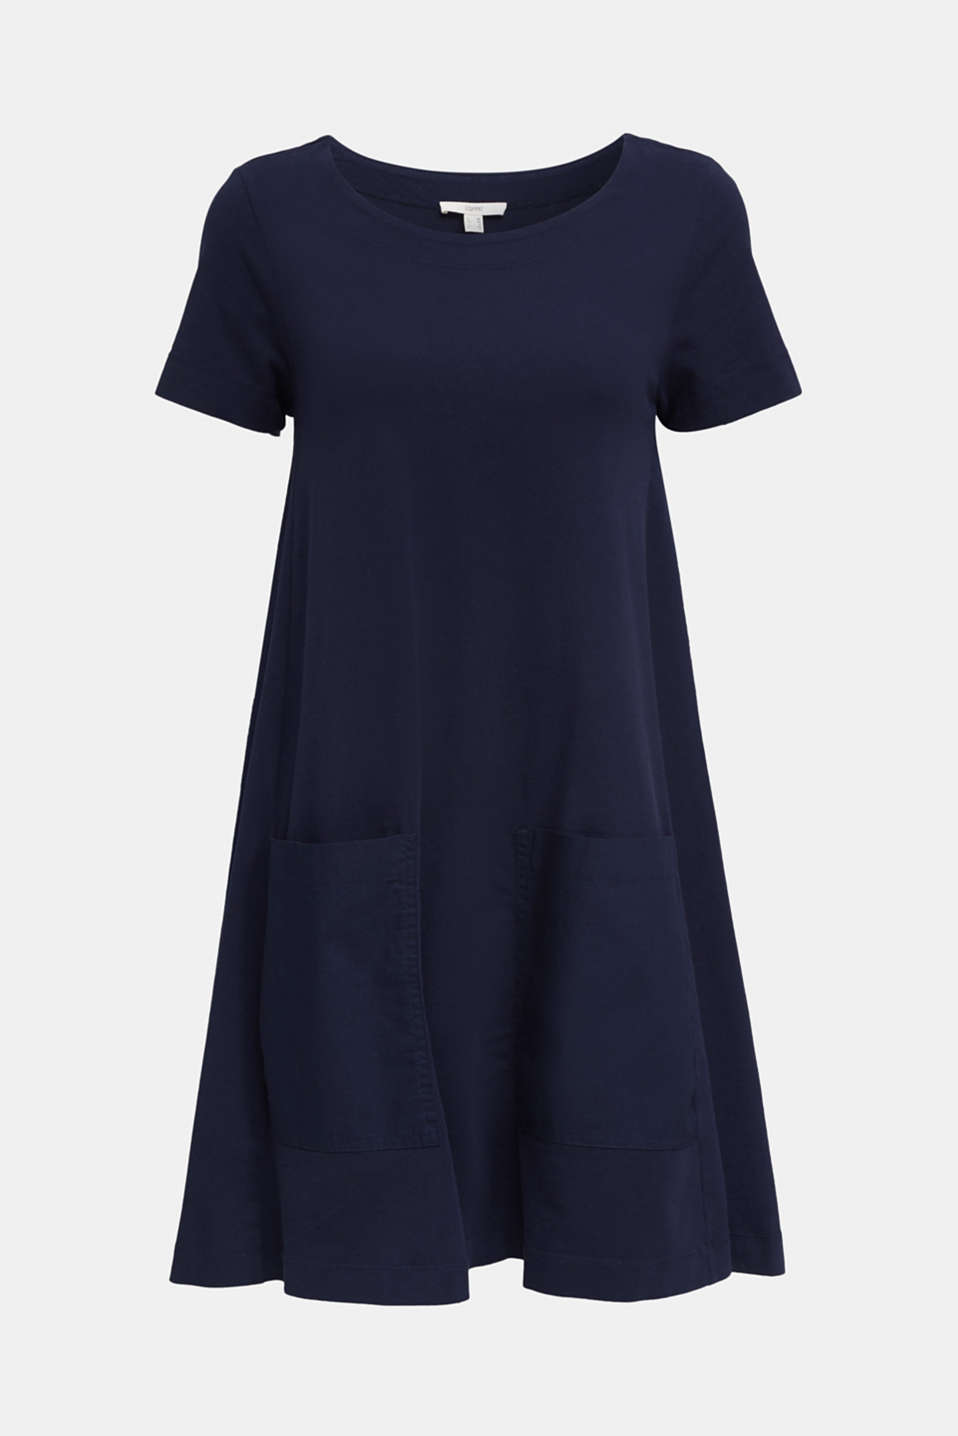 A-line dress made of 100% cotton, NAVY, detail image number 6